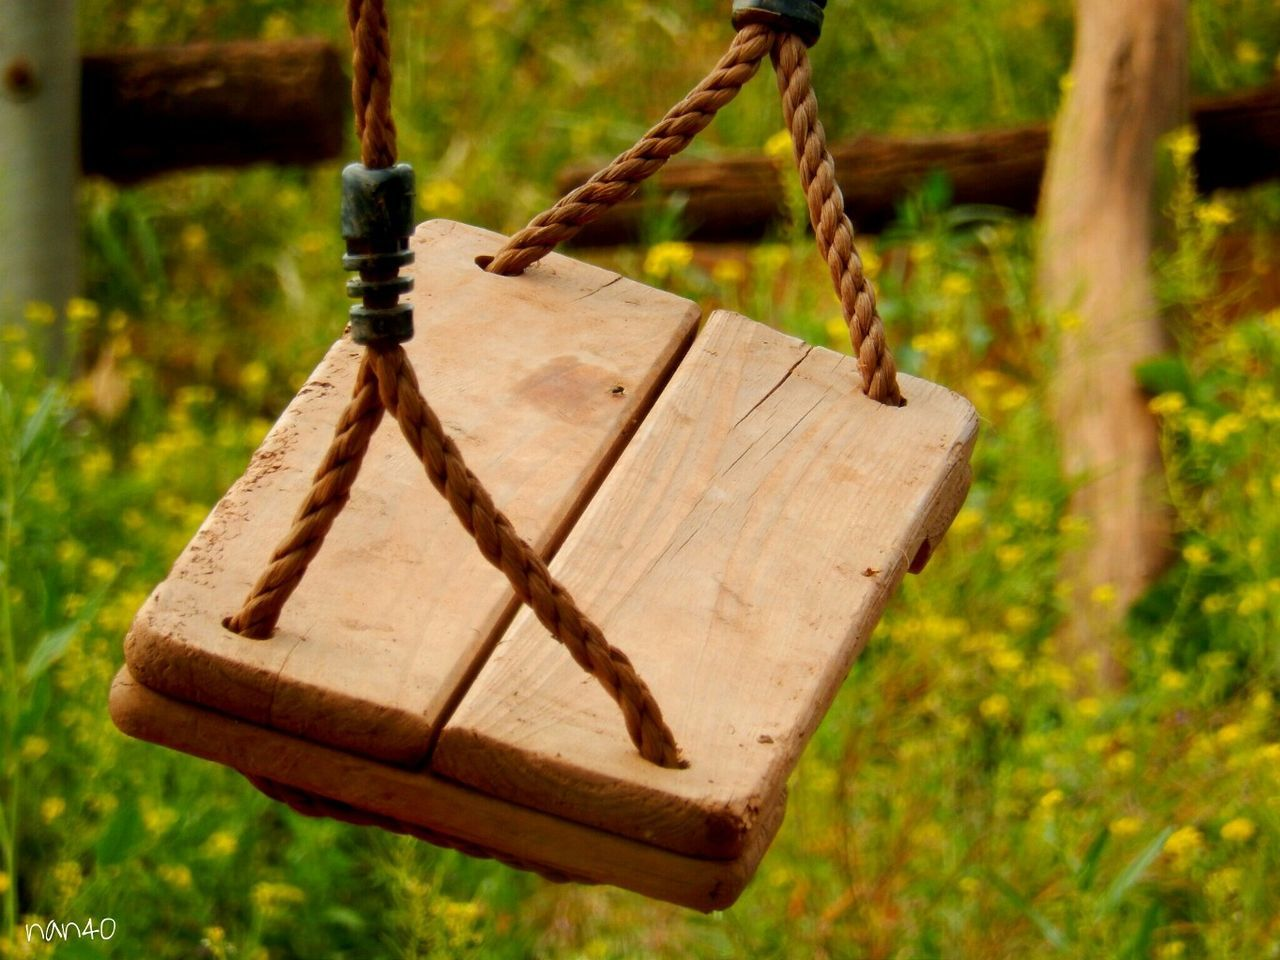 hanging, wood - material, rope, focus on foreground, swing, no people, outdoors, growth, day, close-up, nature